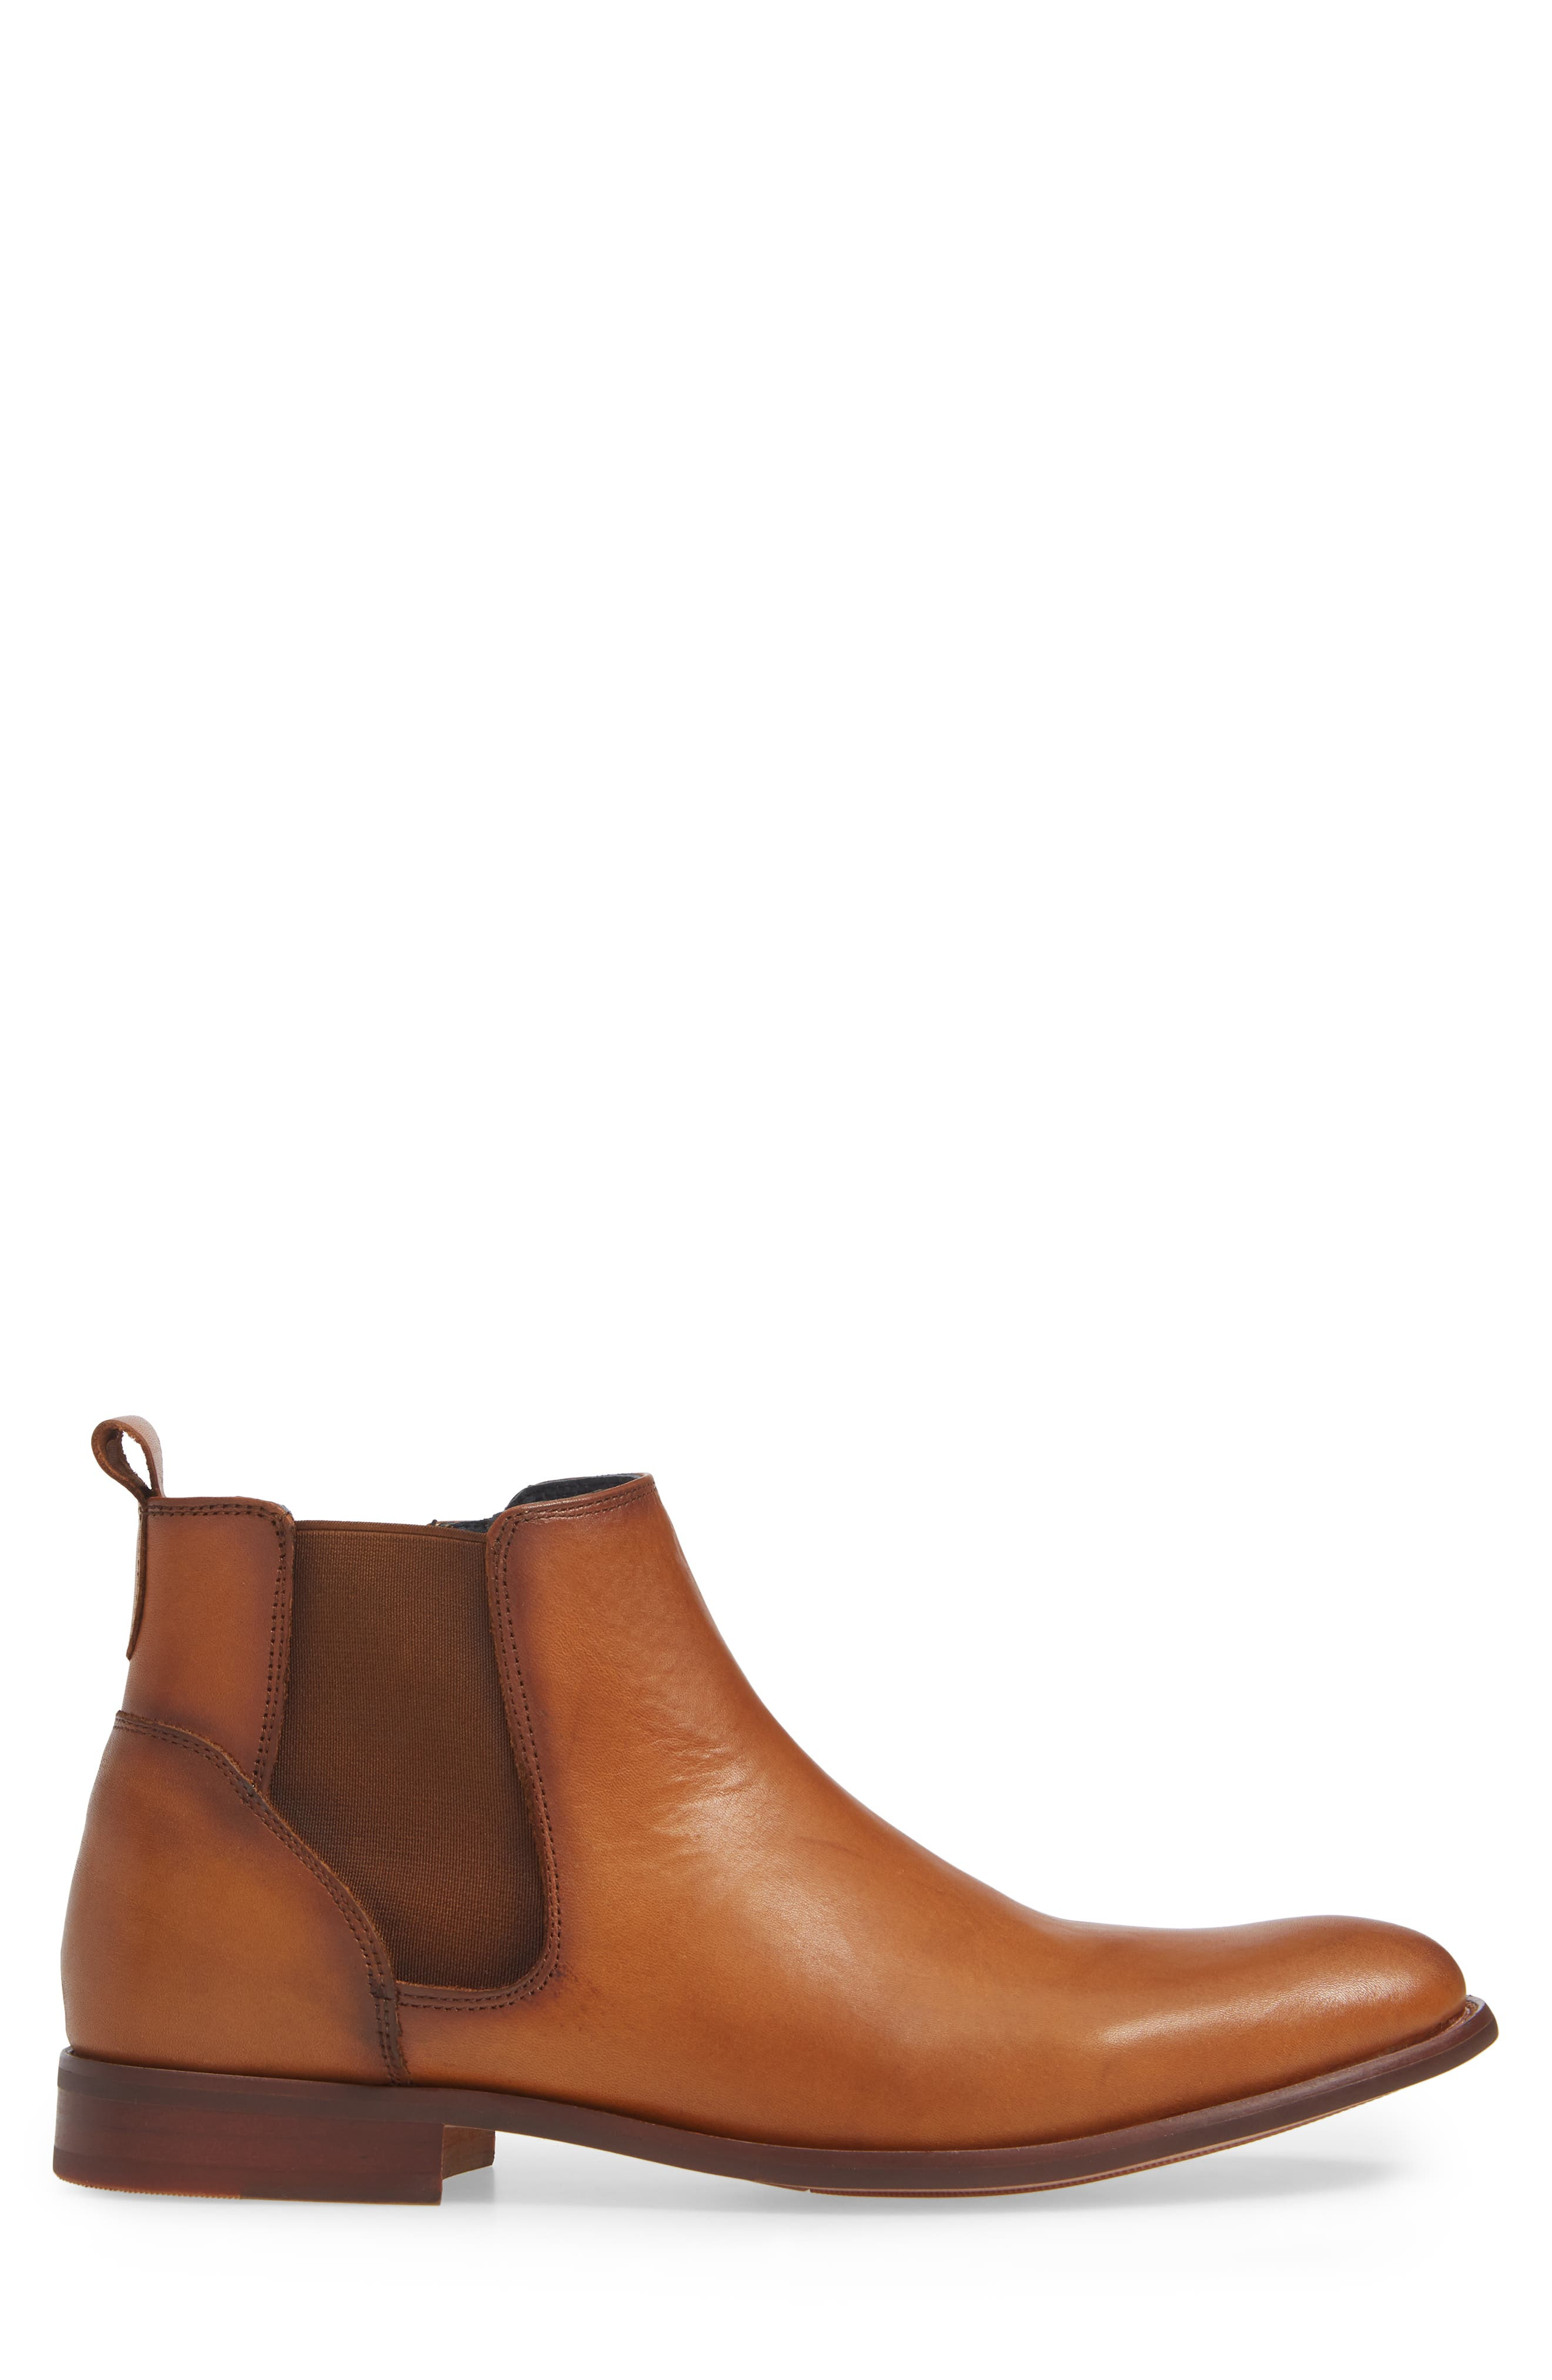 JUMP, Collin Plain Toe Chelsea Boot, Alternate thumbnail 3, color, TAN